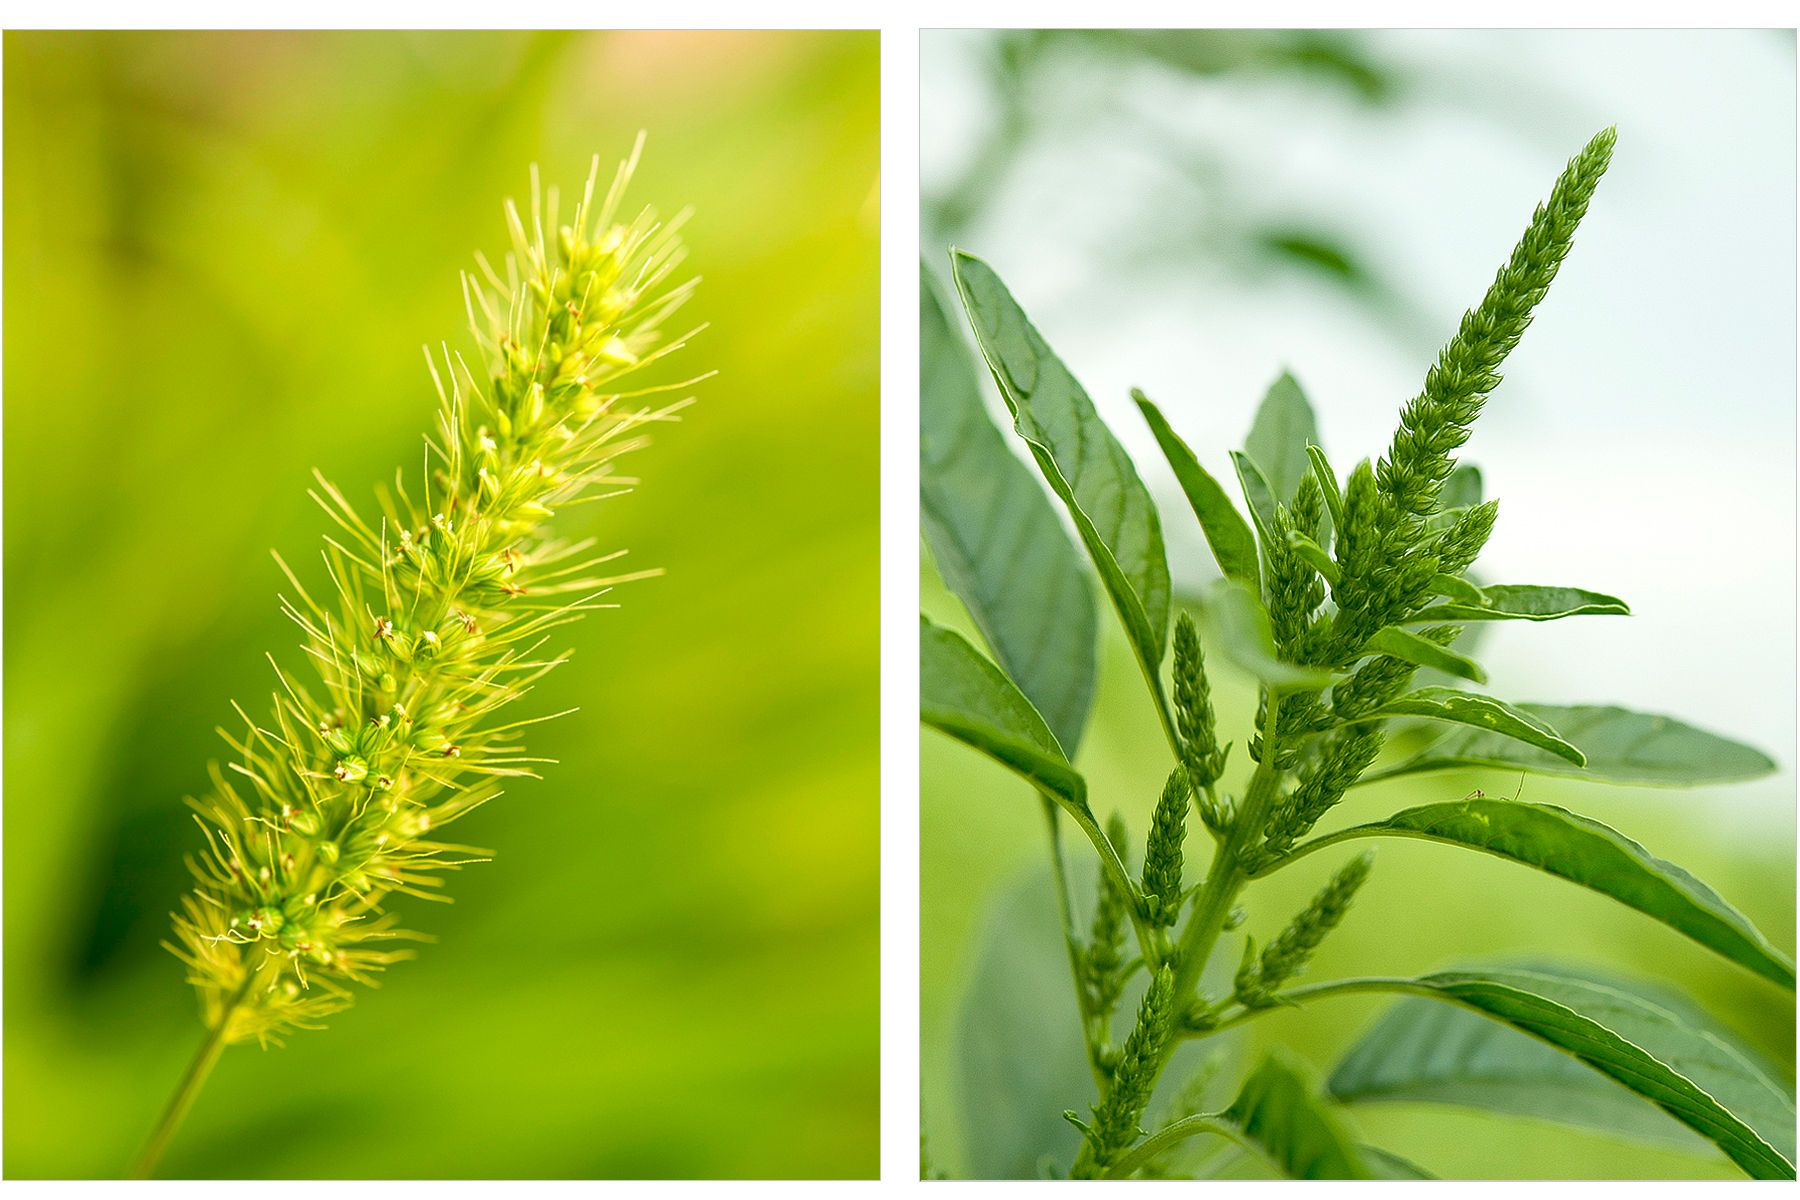 Foxtail and Marestail